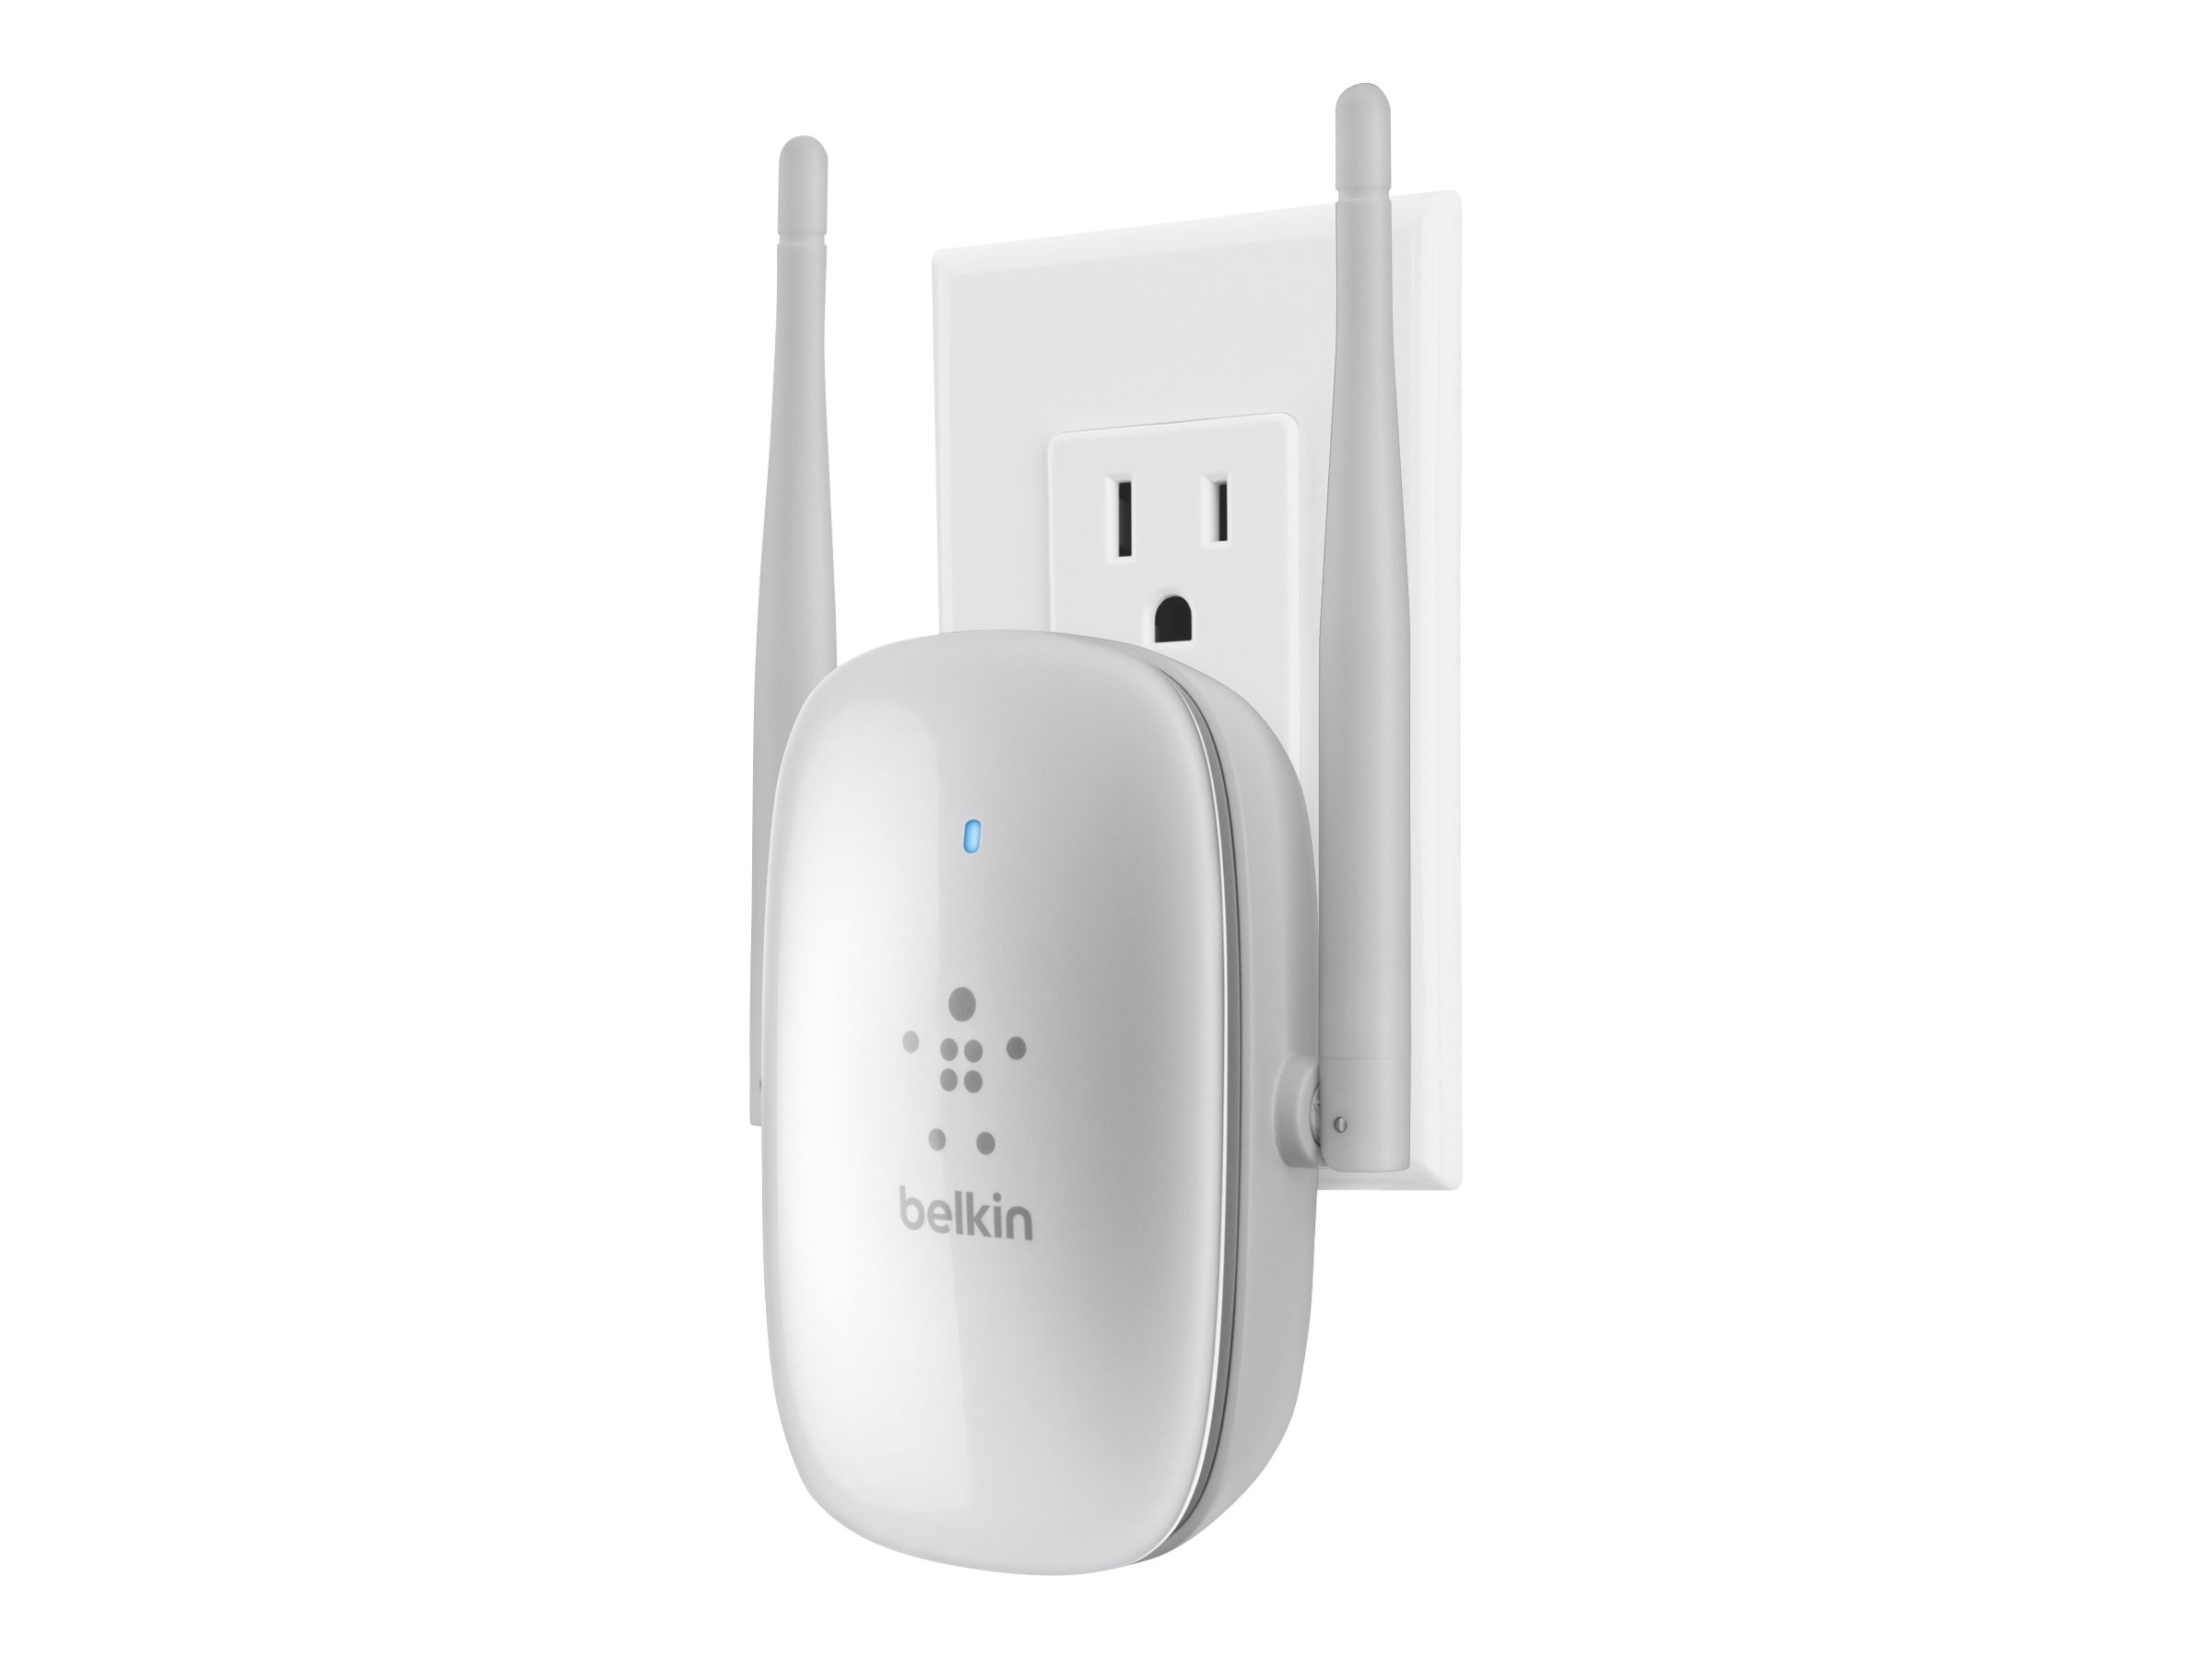 Linksys N600 Dual-Band Wi-Fi Range Extender, F9K1122, 31494808, Wireless Antennas & Extenders